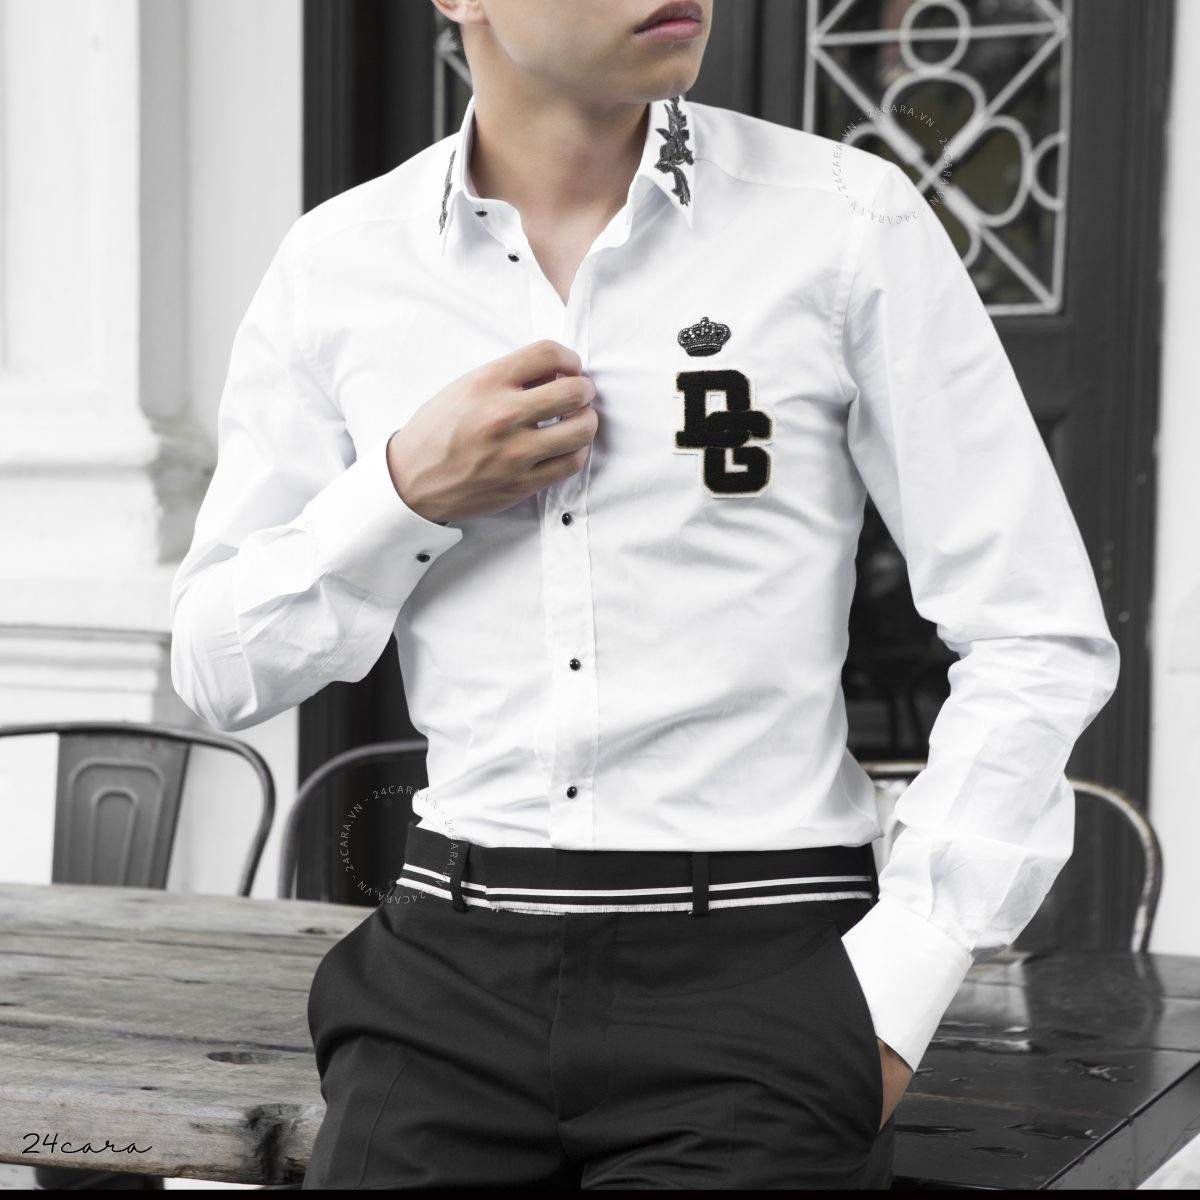 DOLCE&GABBANA PATTERNED COLLAR LOGO EMBROIDERY SHIRT 2018